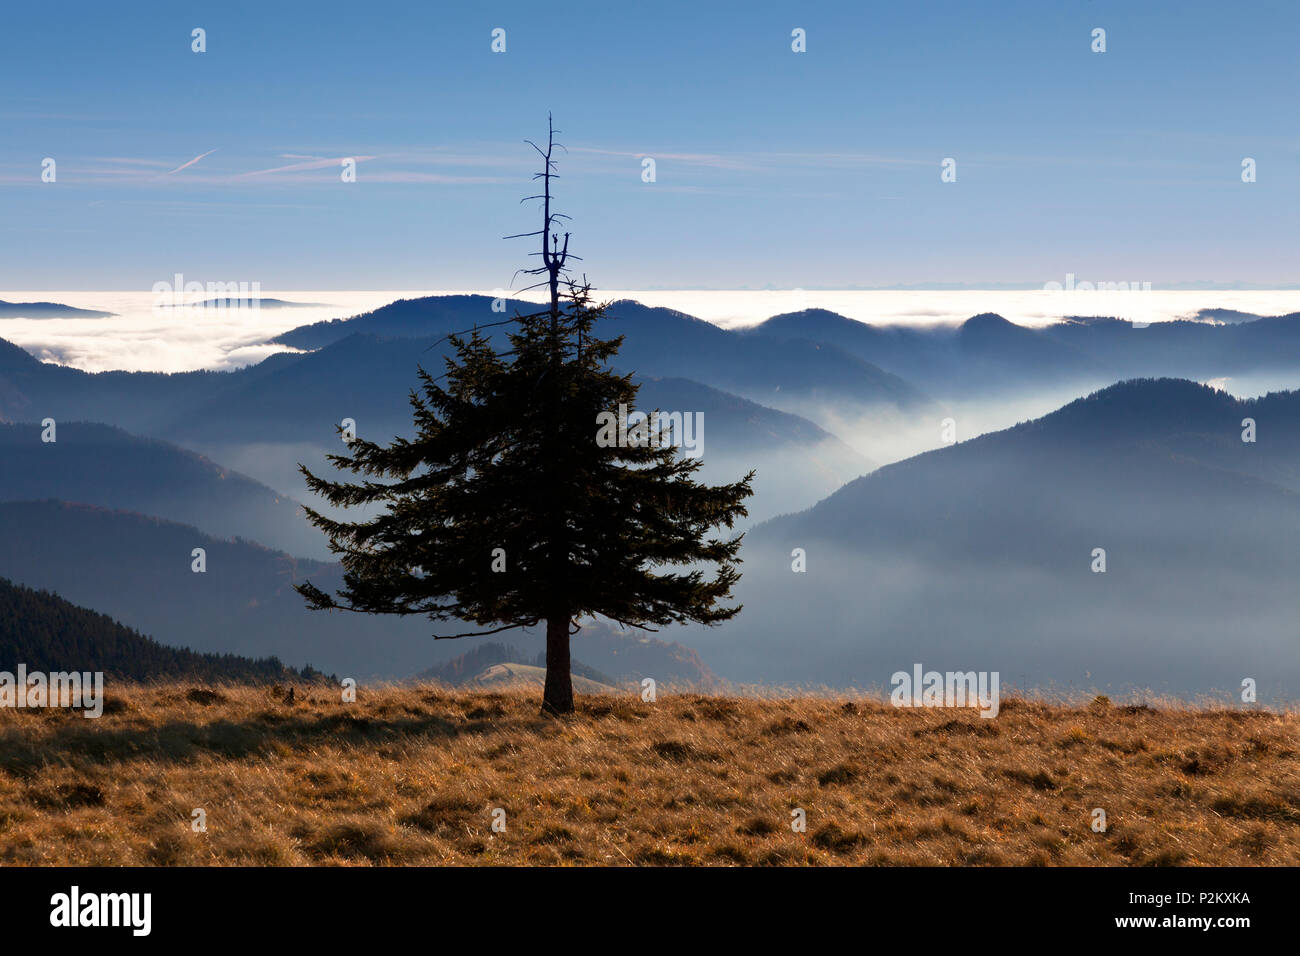 Fir tree at Belchen, Black Forest, Baden-Wuerttemberg, Germany - Stock Image